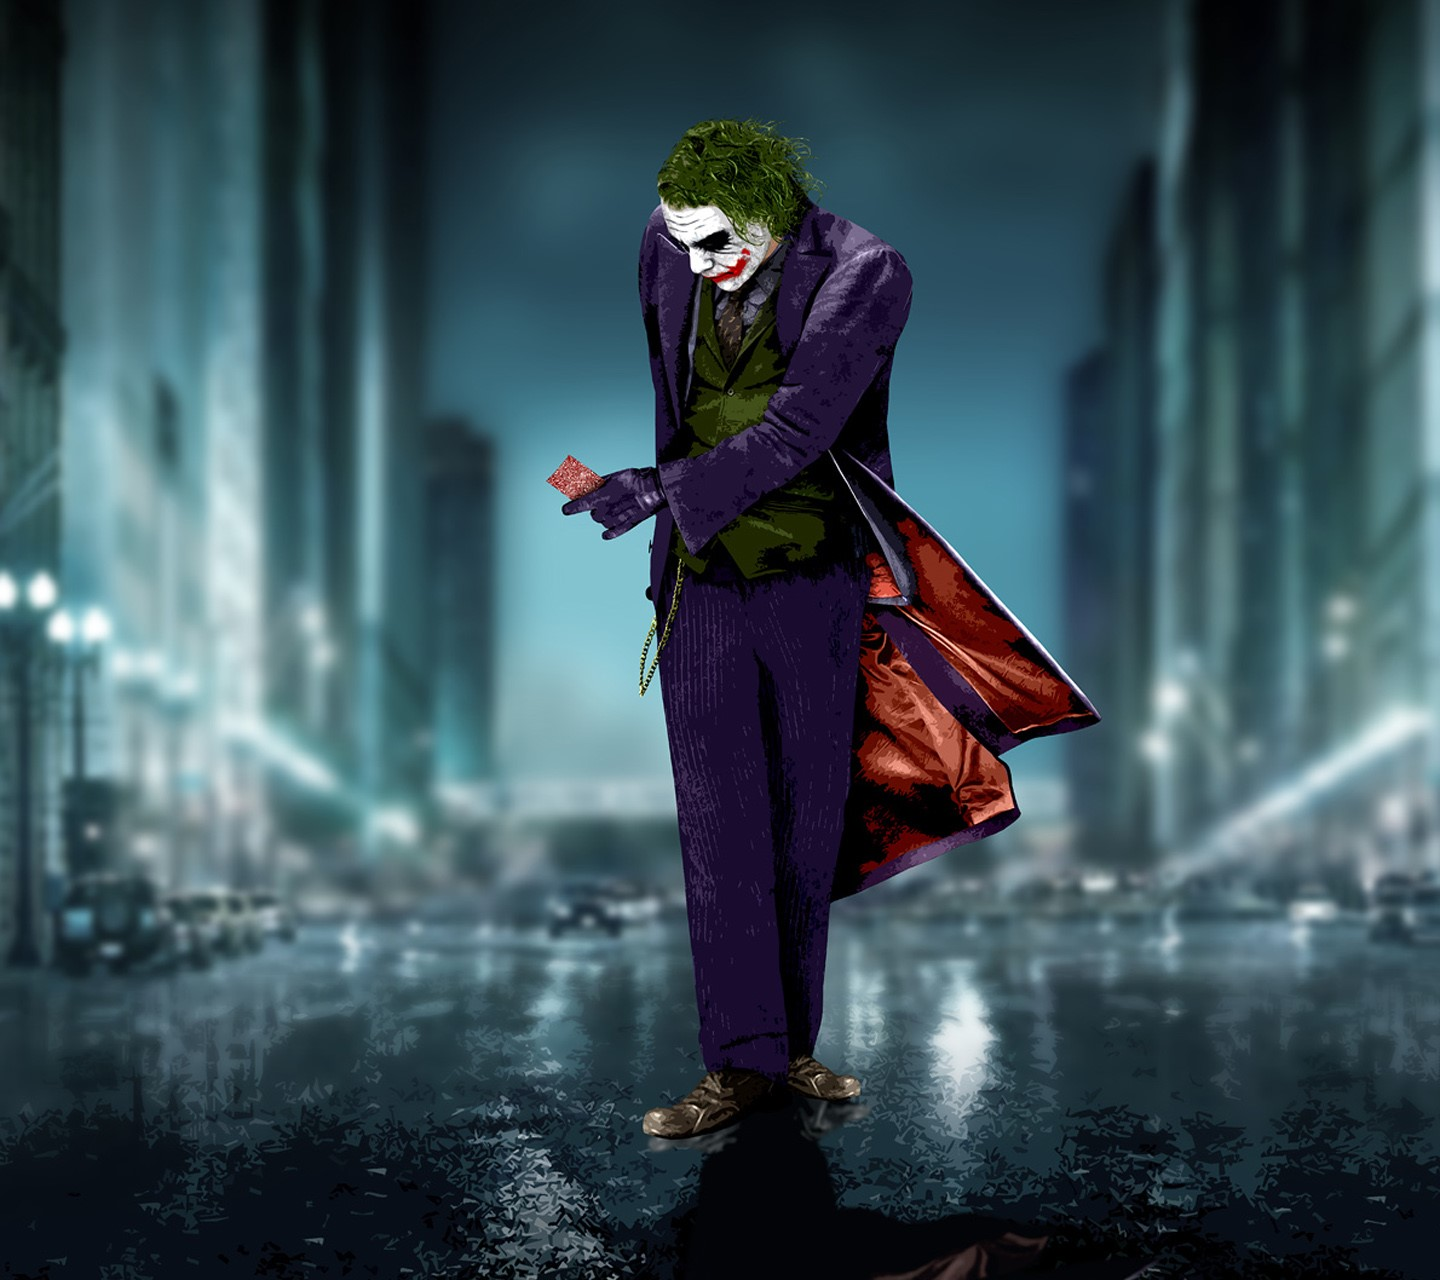 Joker wallpaper 9552516